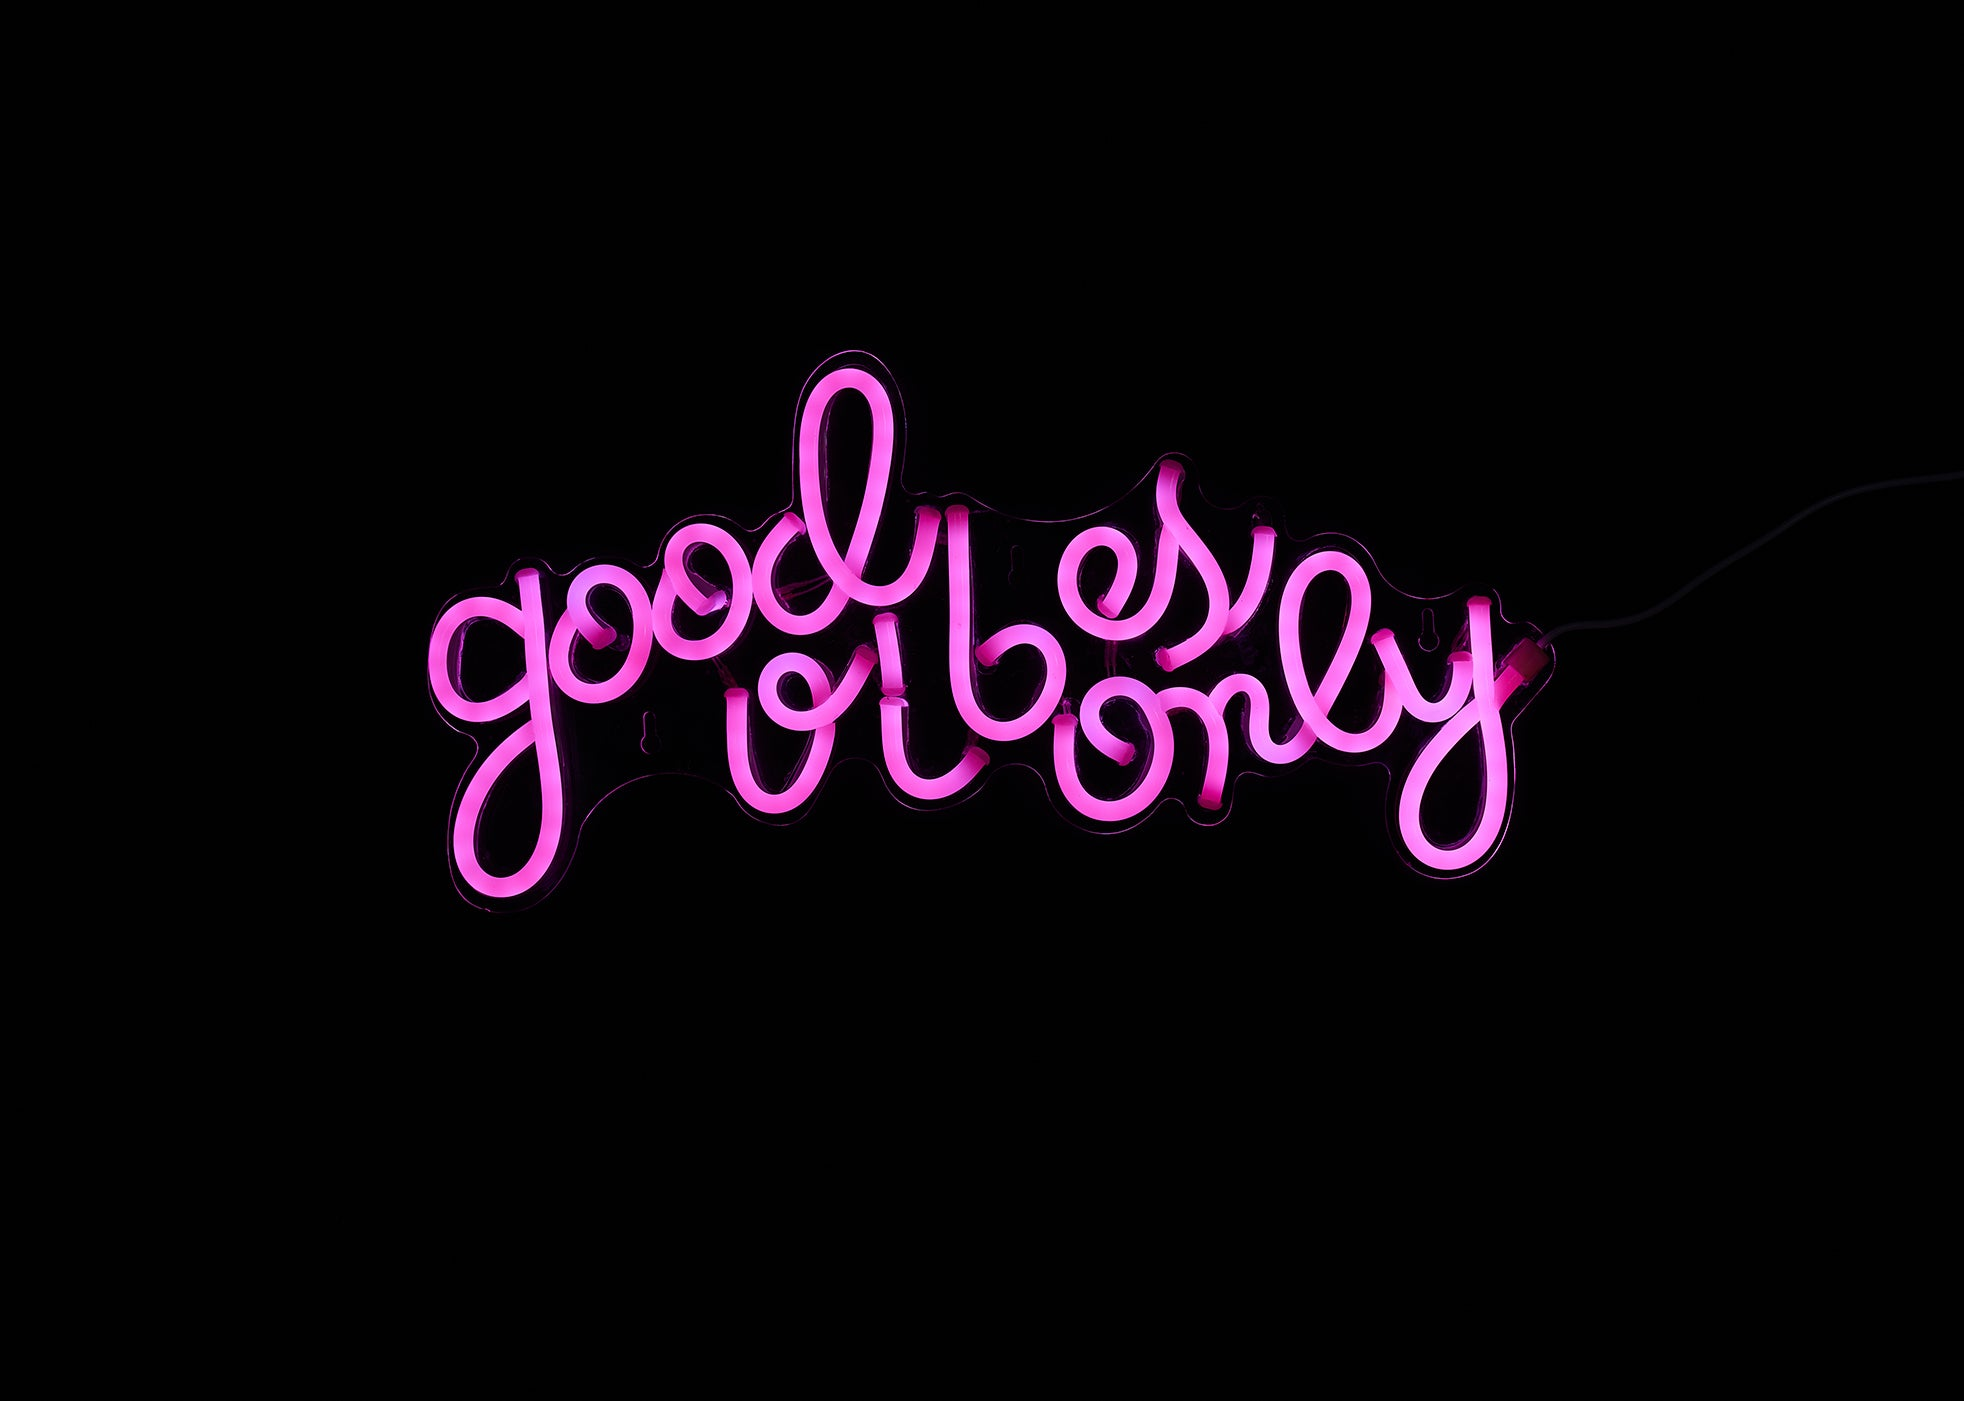 Good Vibes Only LED Neon Wall Sign - Cocus Pocus